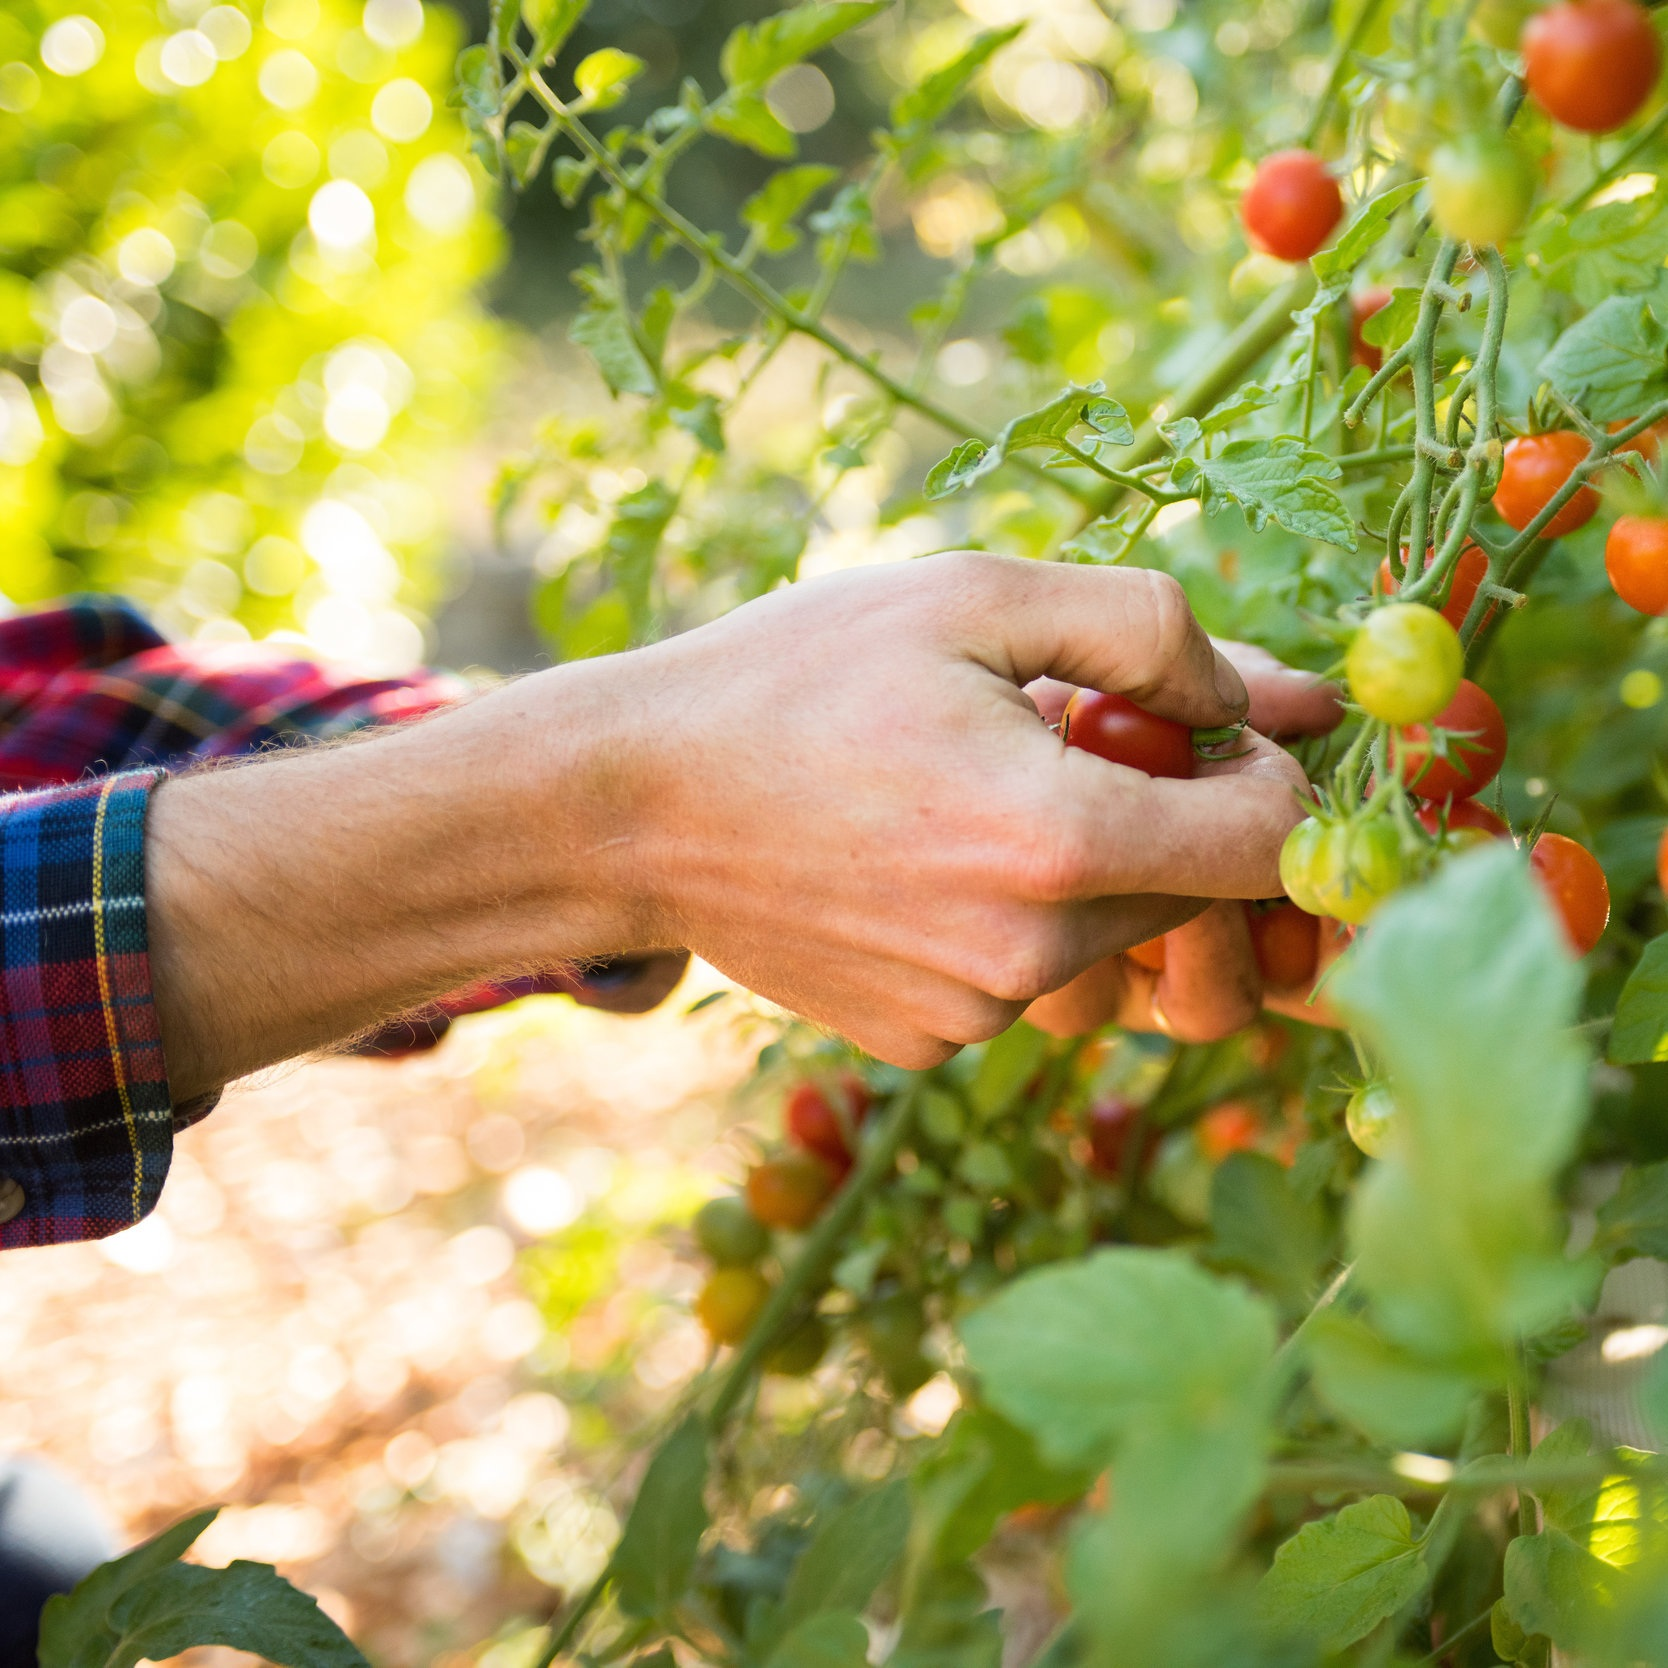 Picking+Cherry+Tomatoes